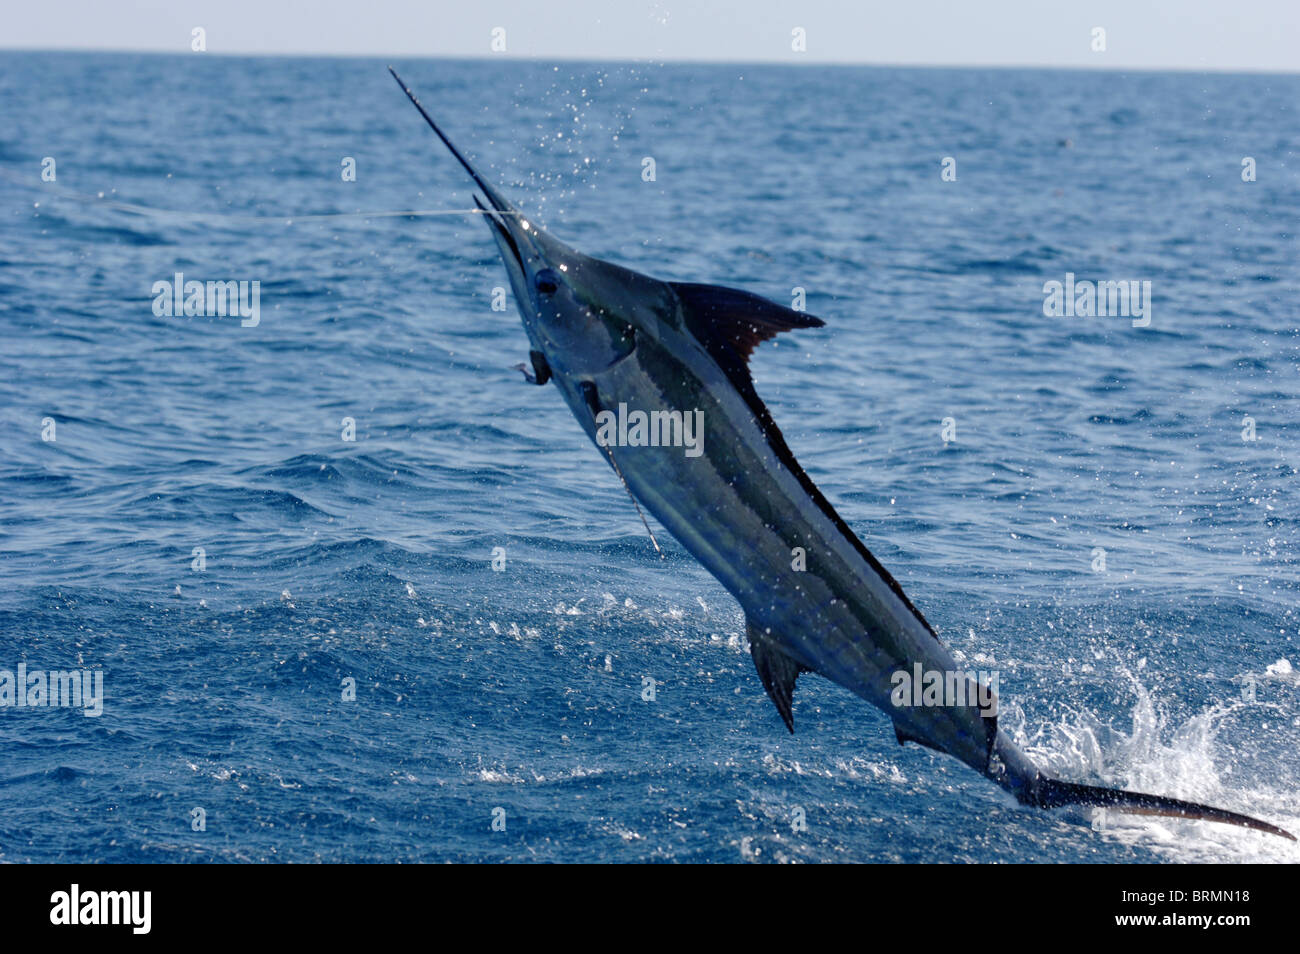 how to catch blue marlin